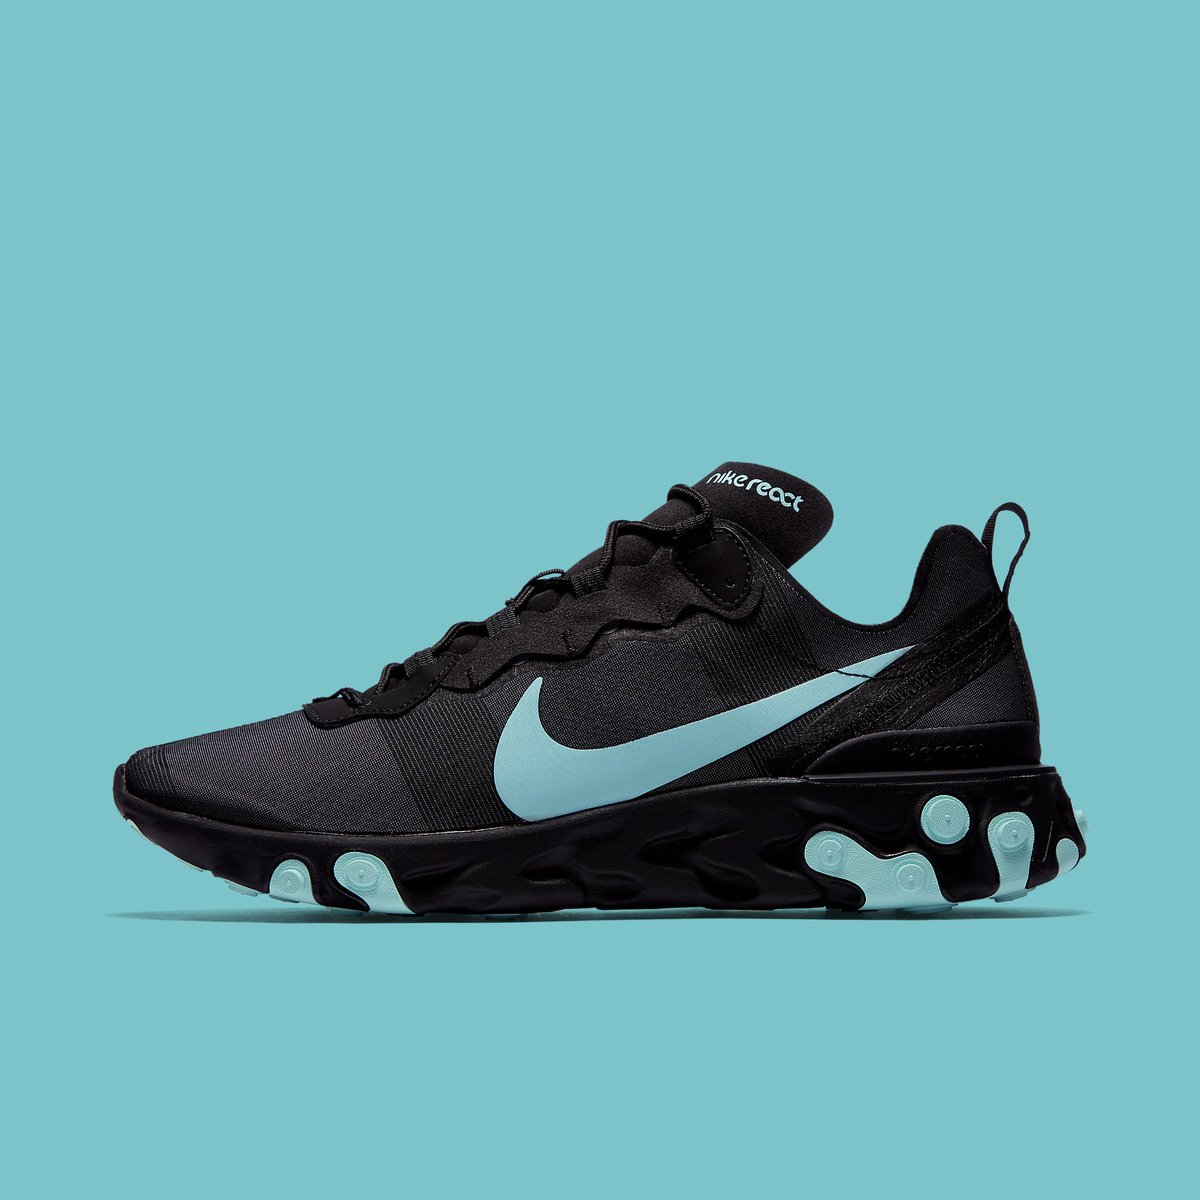 finest selection 73e10 e50c6 the nike react element 55 will release on september 29 for 130 each